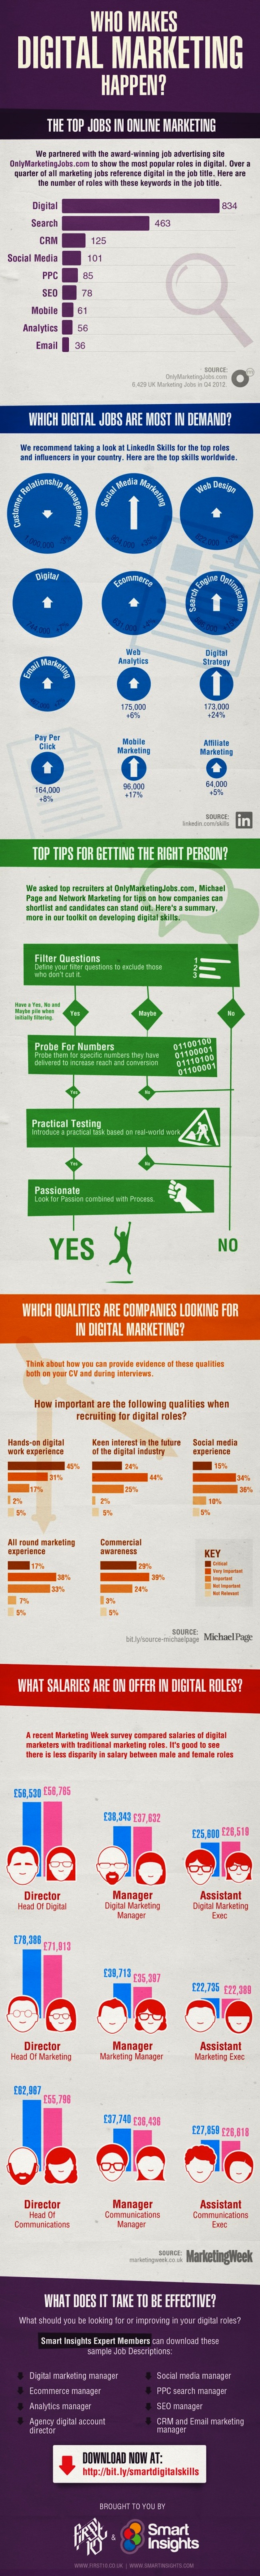 digital-marketing-jobs-infographic-smartinsights-600x5948